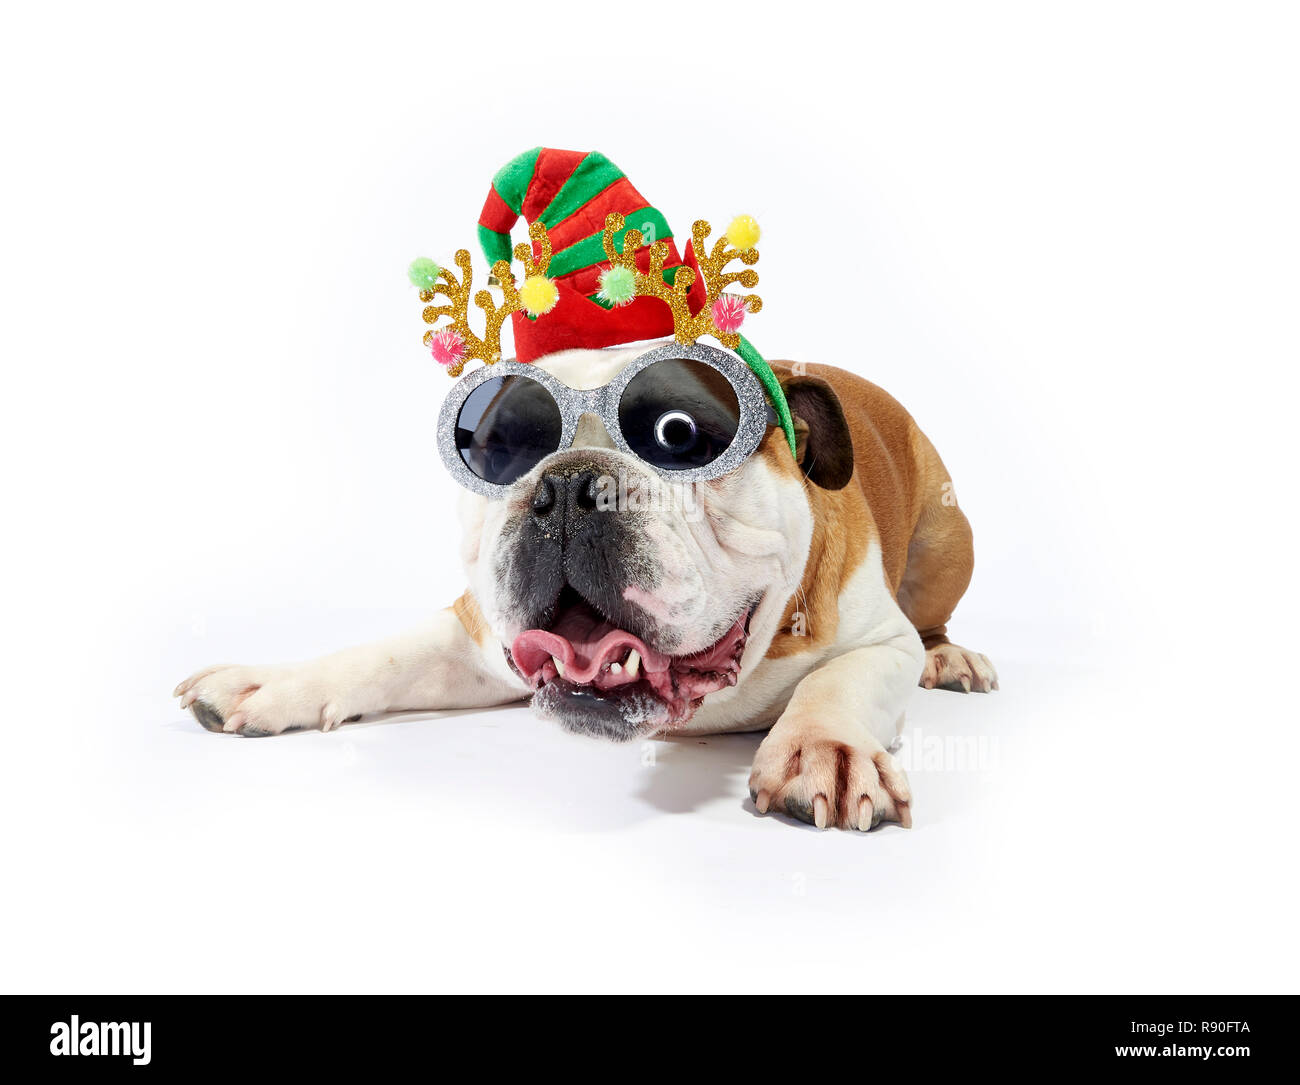 A English Bulldog showing some festive cheer by wearing sunglasses and festive antlers Stock Photo